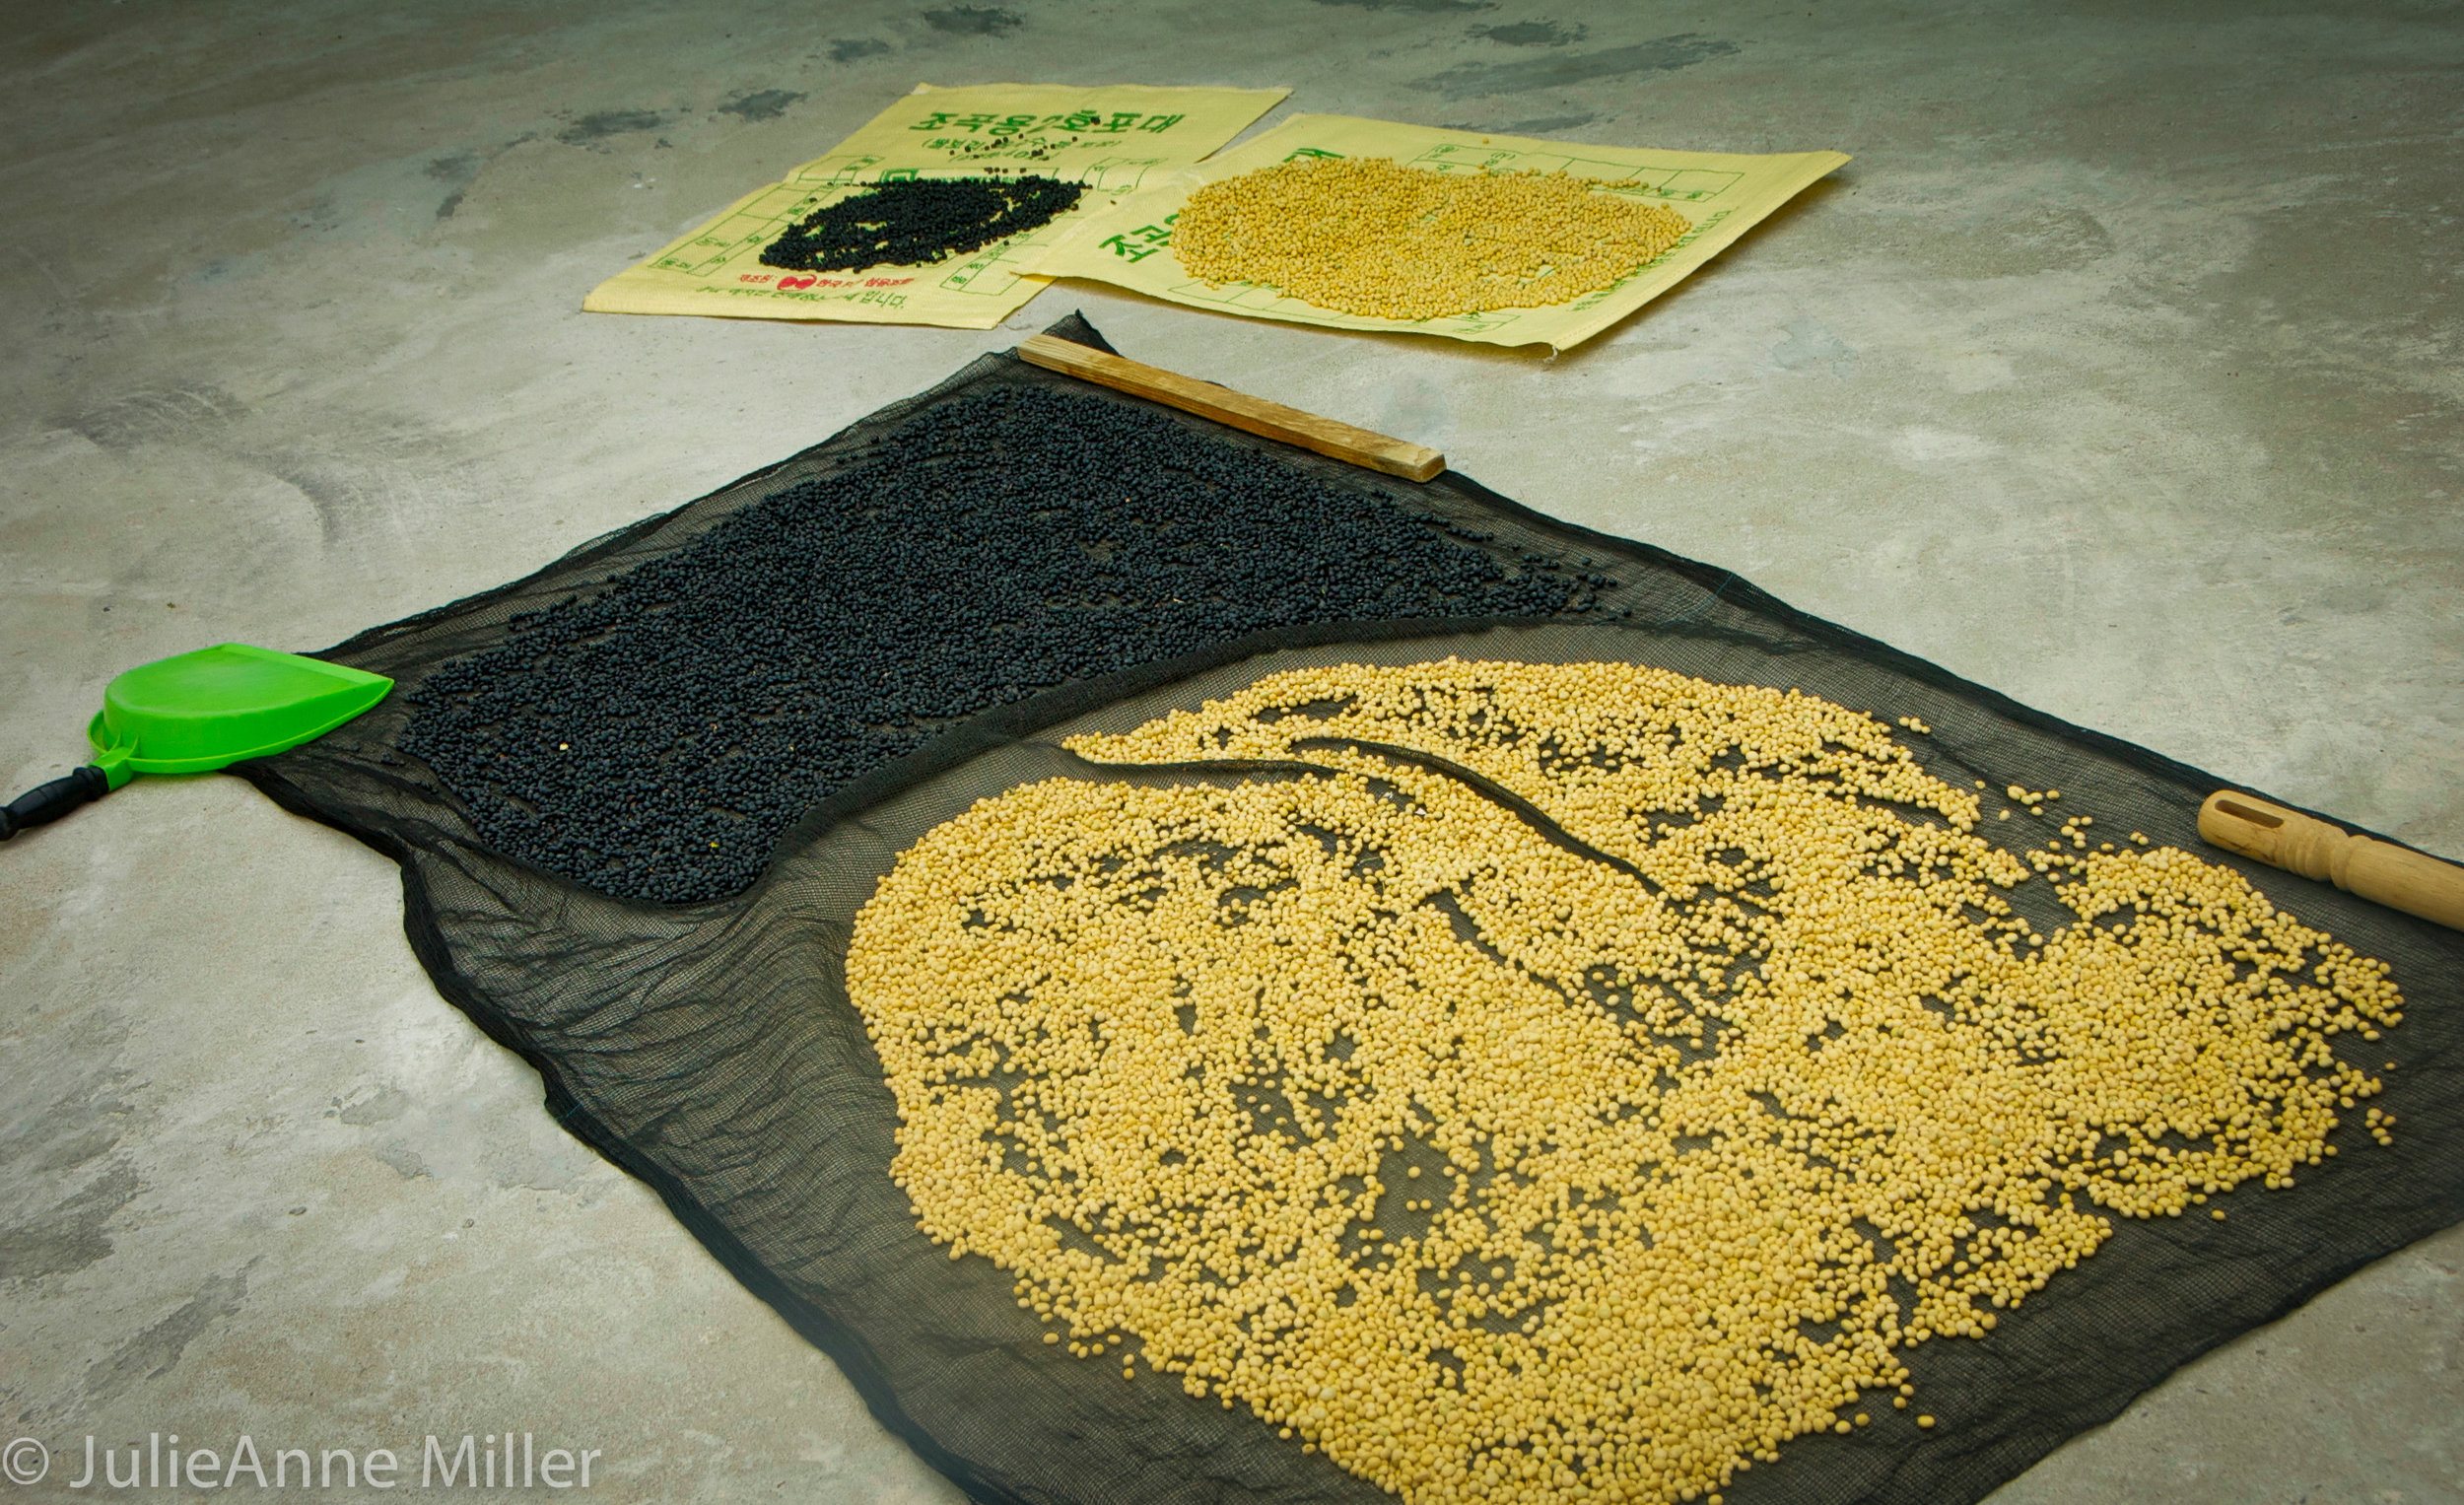 drying beans in Gacheon, Korea